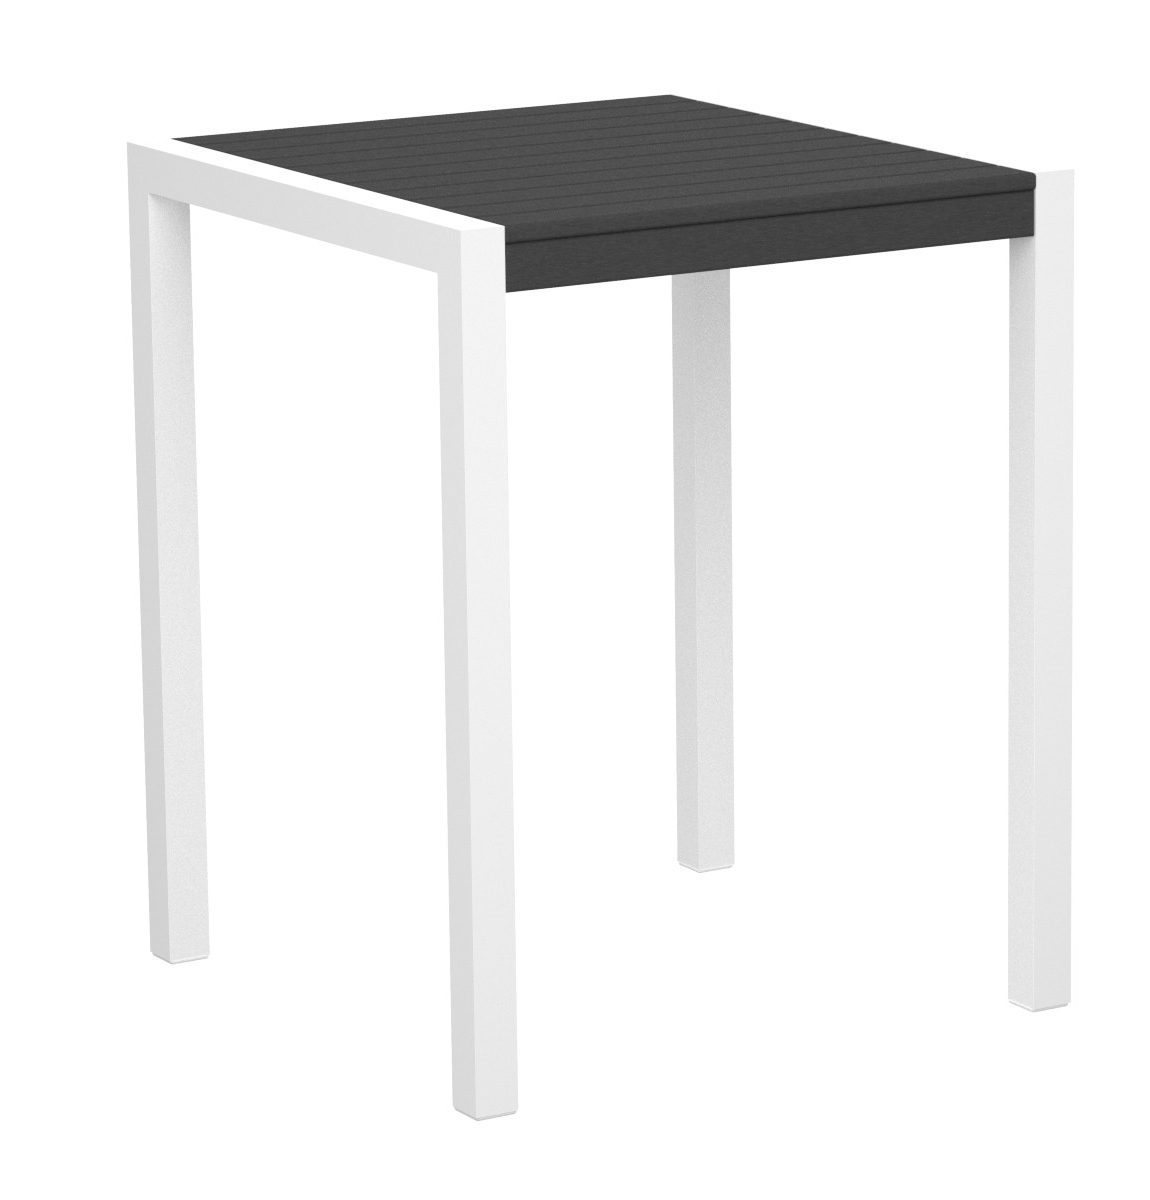 PolyWood MOD 30 inch Square Counter Table - 8001